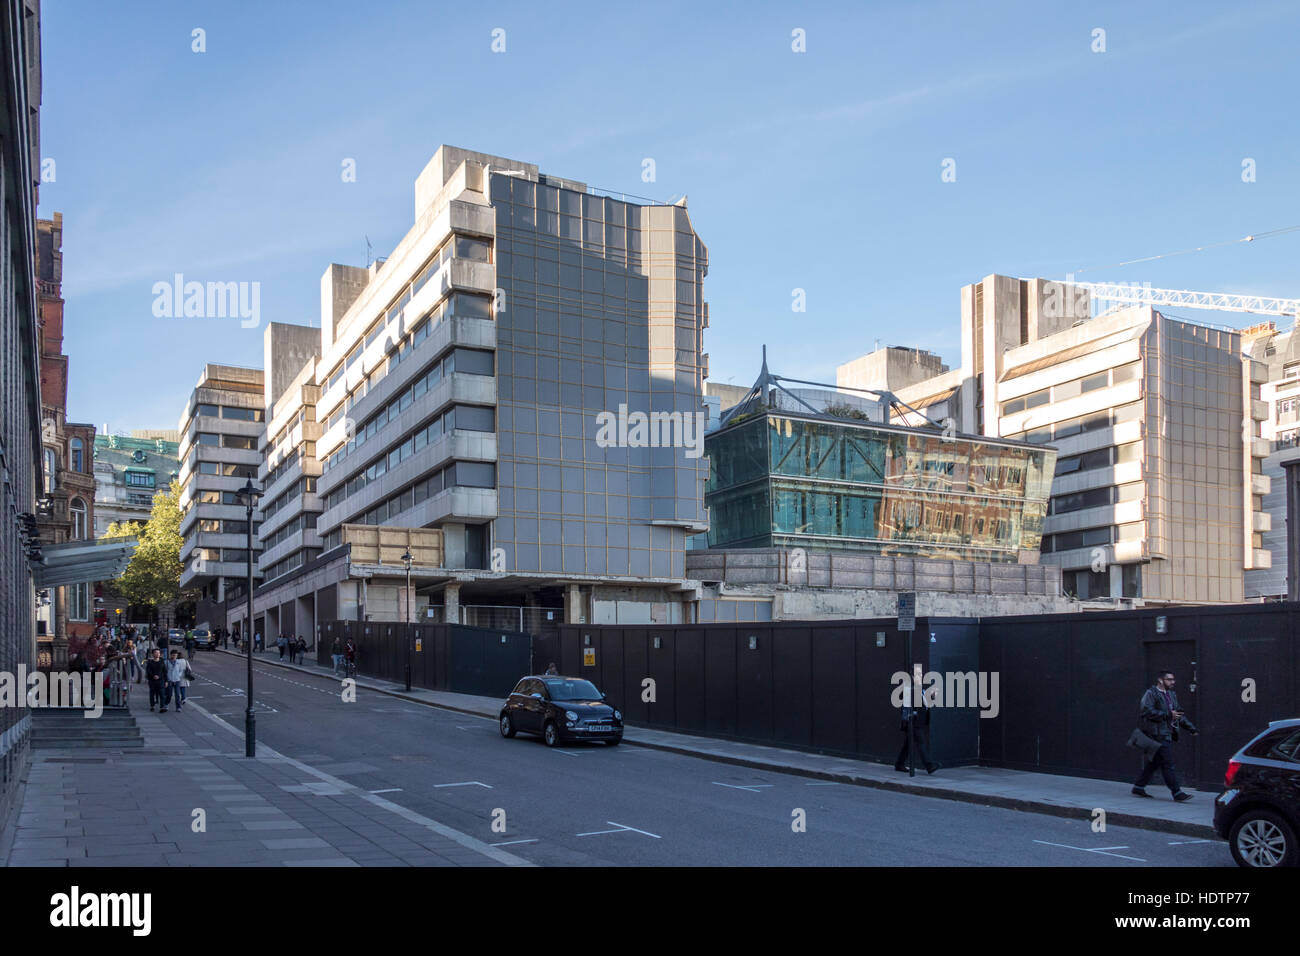 Arundel Great Court demolition viewed from Surrey Street, London, UK - Stock Image